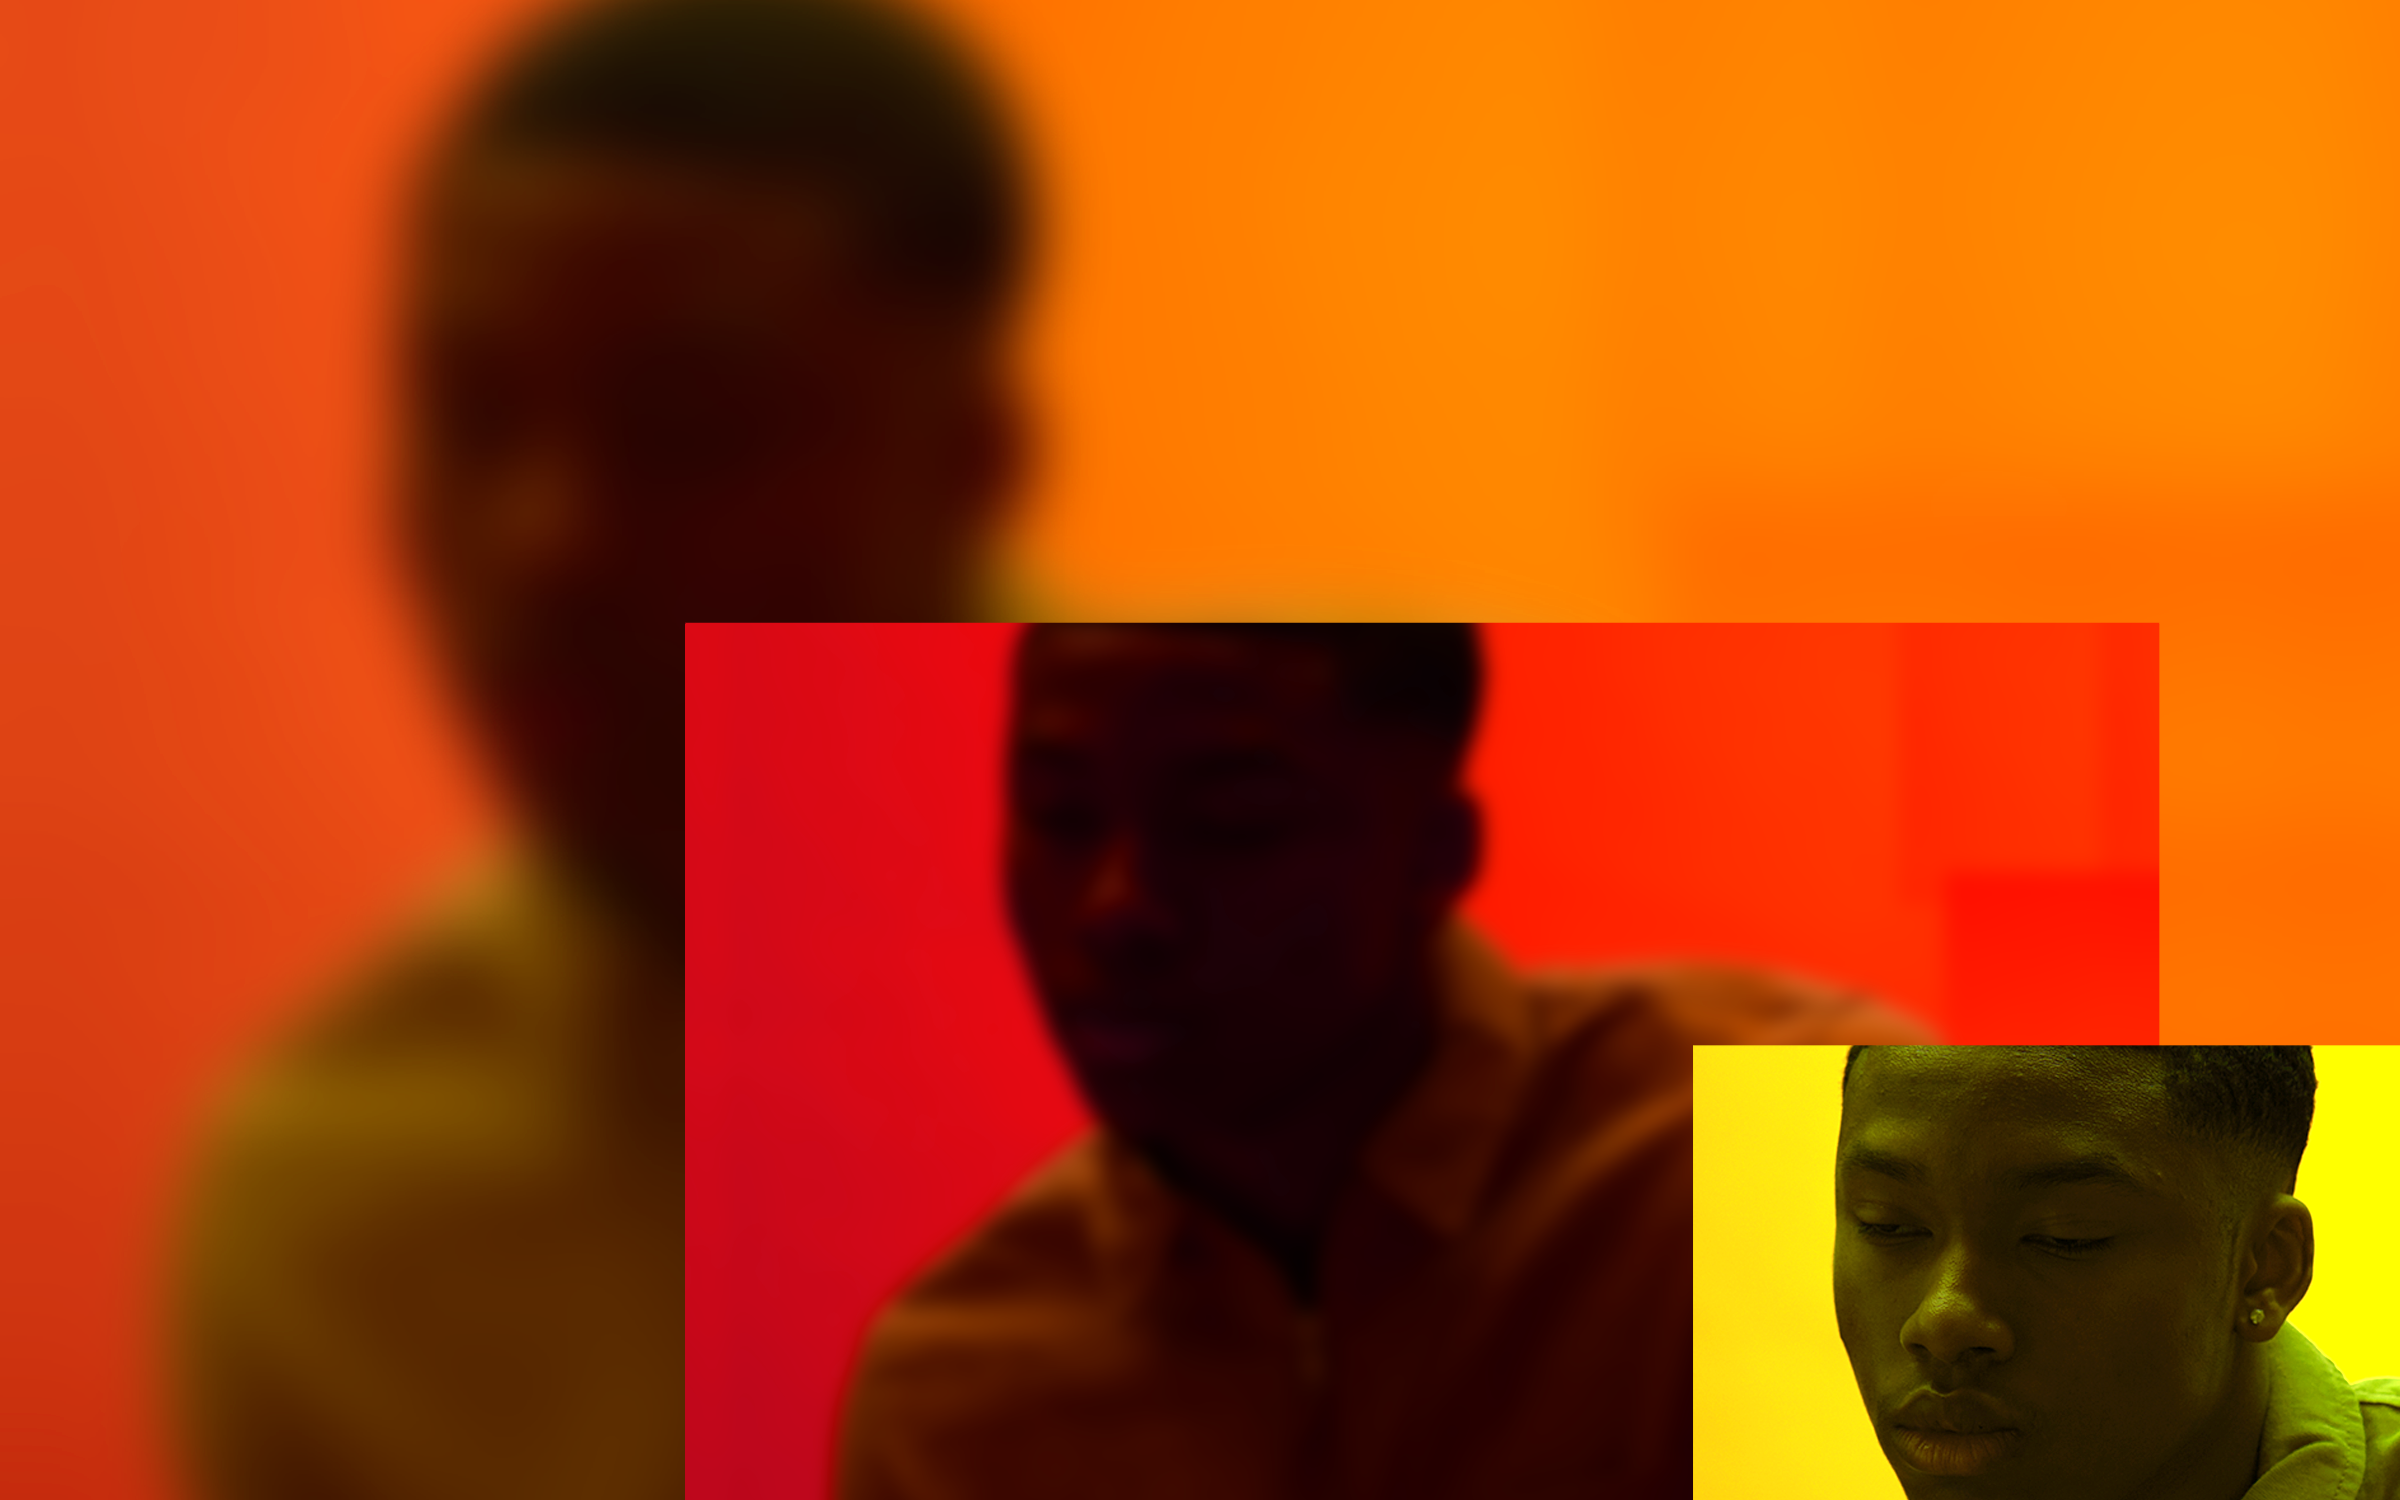 In the lower left corner of this photo is a small rectangle with closeup of a depressed-looking Black person against a yellow background. A larger, zoomed-out, slightly blurry version of the same image, but colored red, is to the left of the small rectangle, which overlaps it slightly. The background is an even more zoomed-out and blurry version of the pic, colored orange.